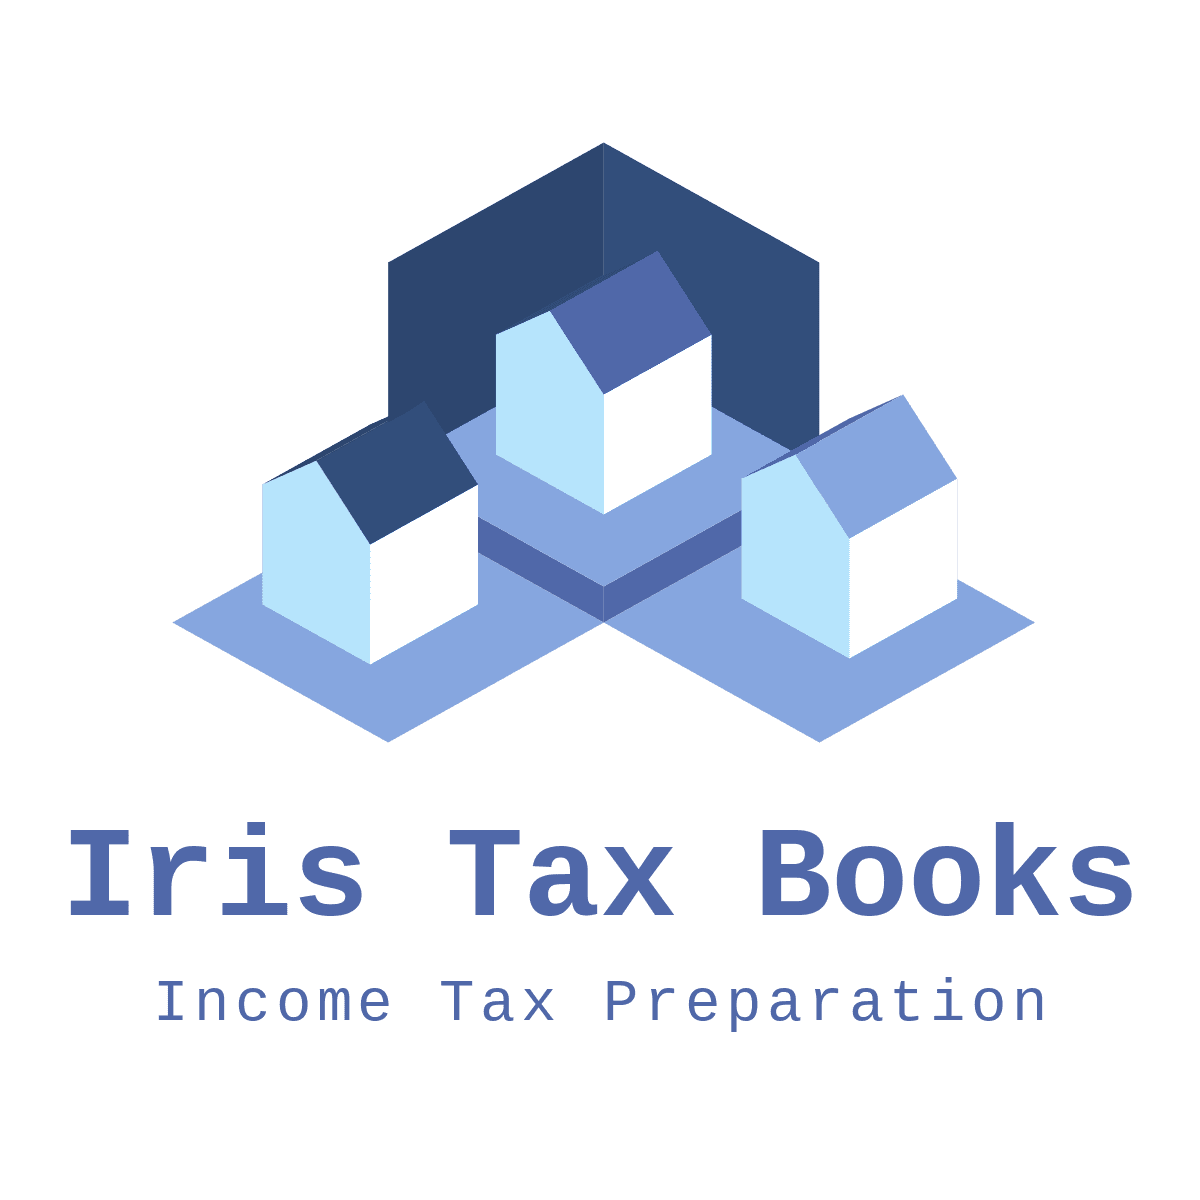 Iris Tax Books